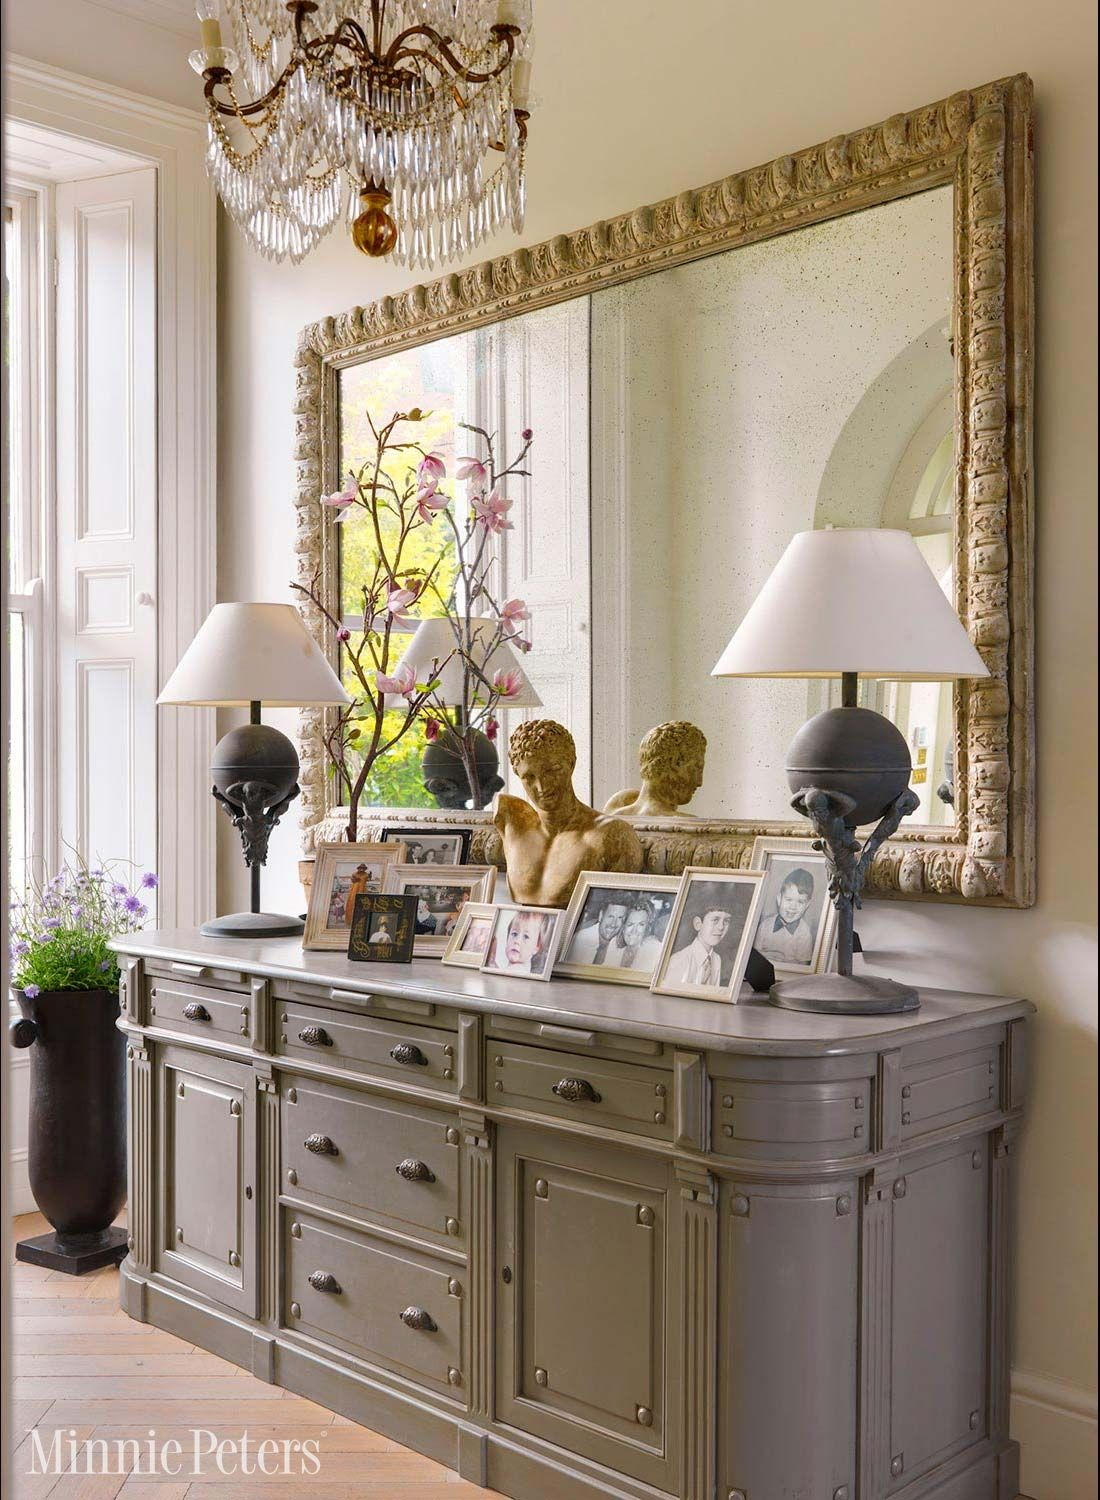 Vintage Sideboard Yorkshire Entrance Hall With Sideboard And Large Mirror